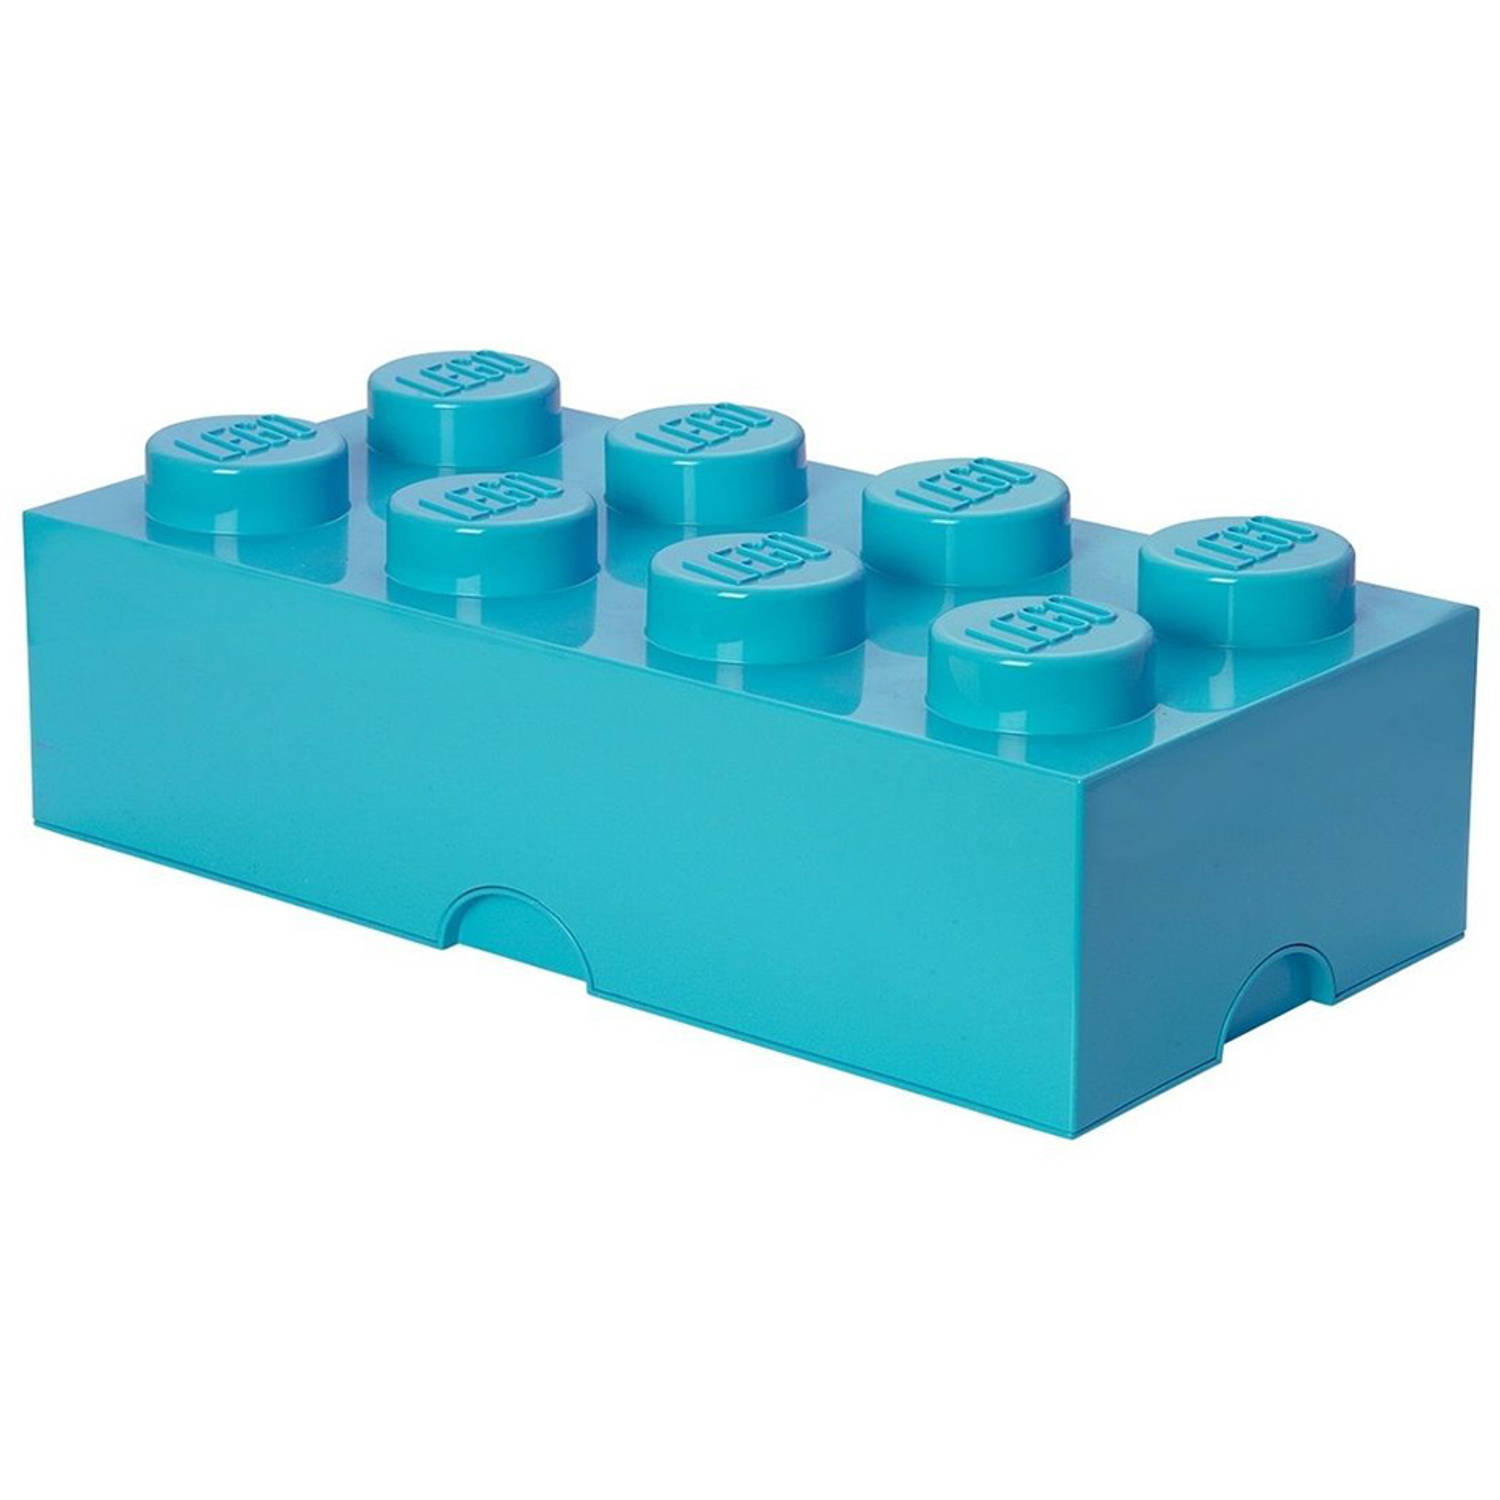 LEGO Design Collection Brick opbergbox 8 - Azur blauw